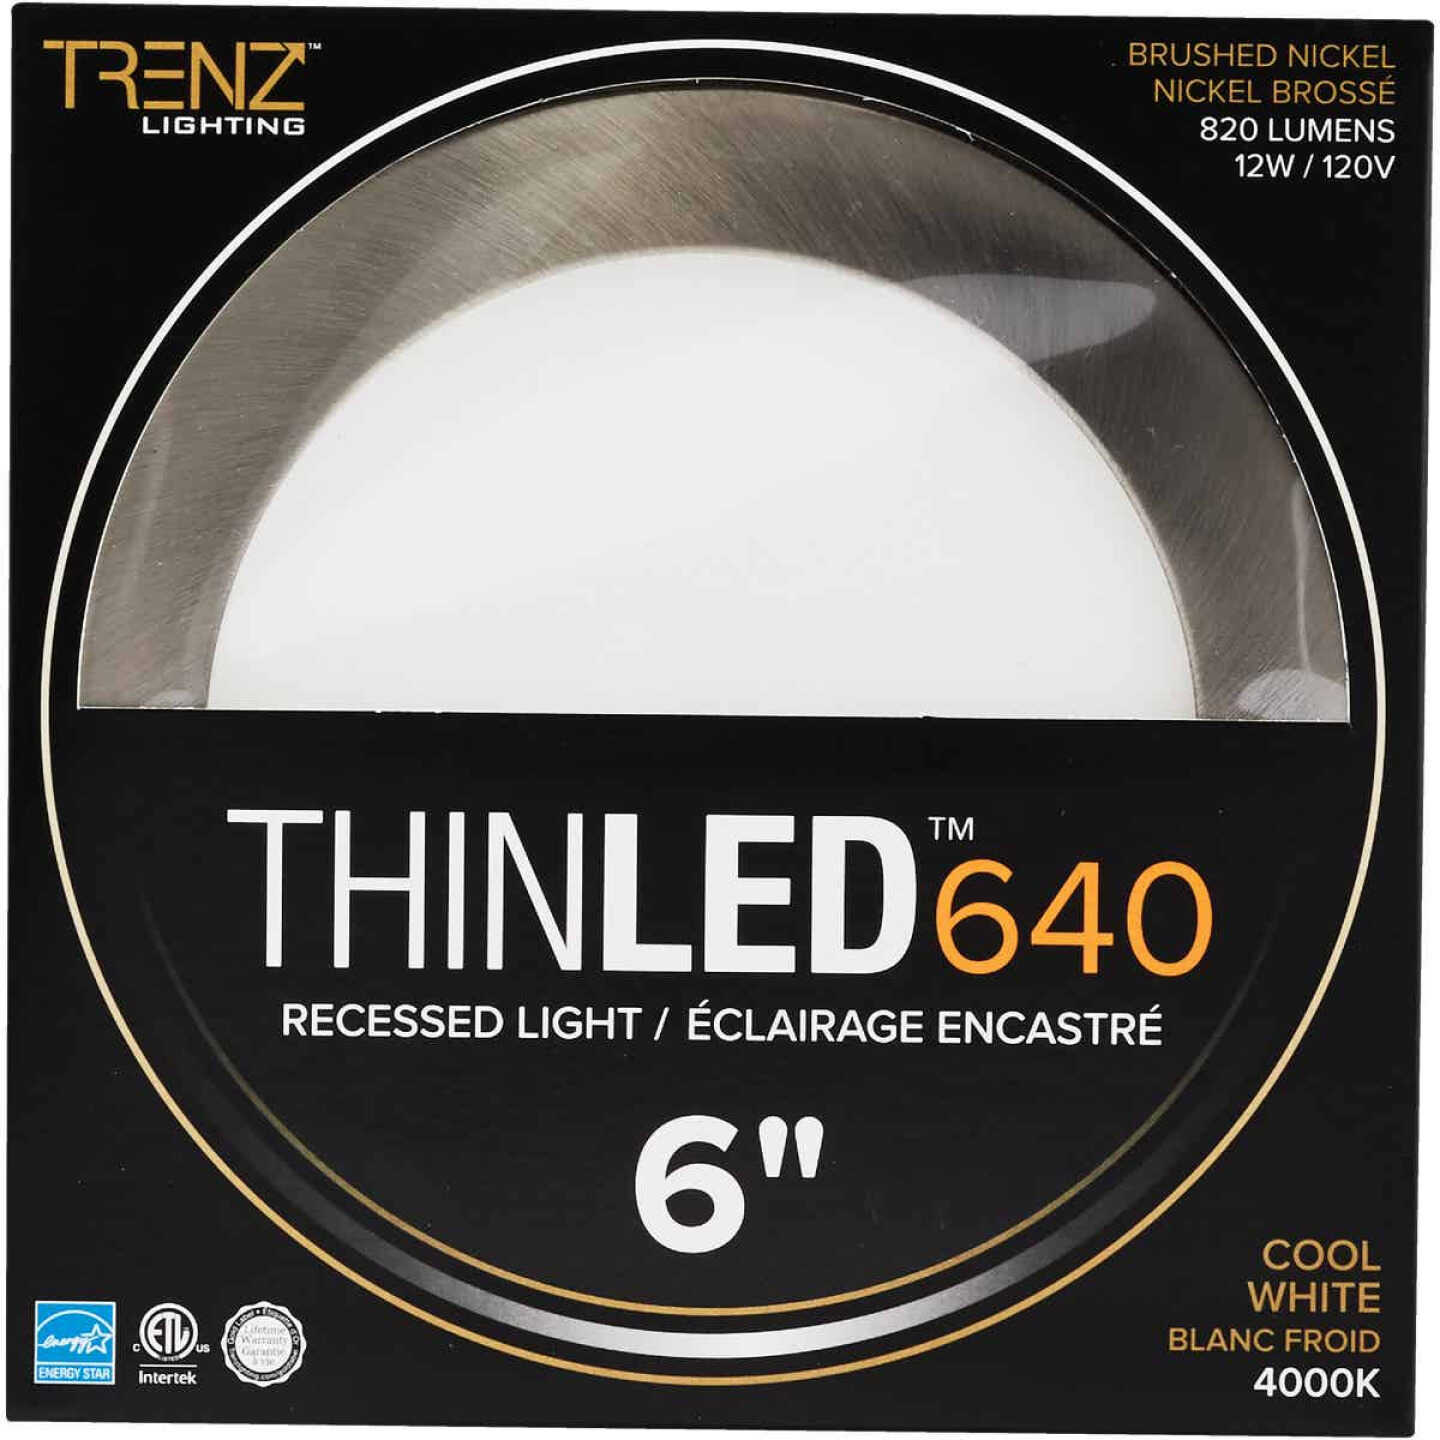 Liteline Trenz ThinLED 6 In. New Construction/Remodel IC Rated Brushed Nickel 820 Lm. 4000K Recessed Light Kit Image 2